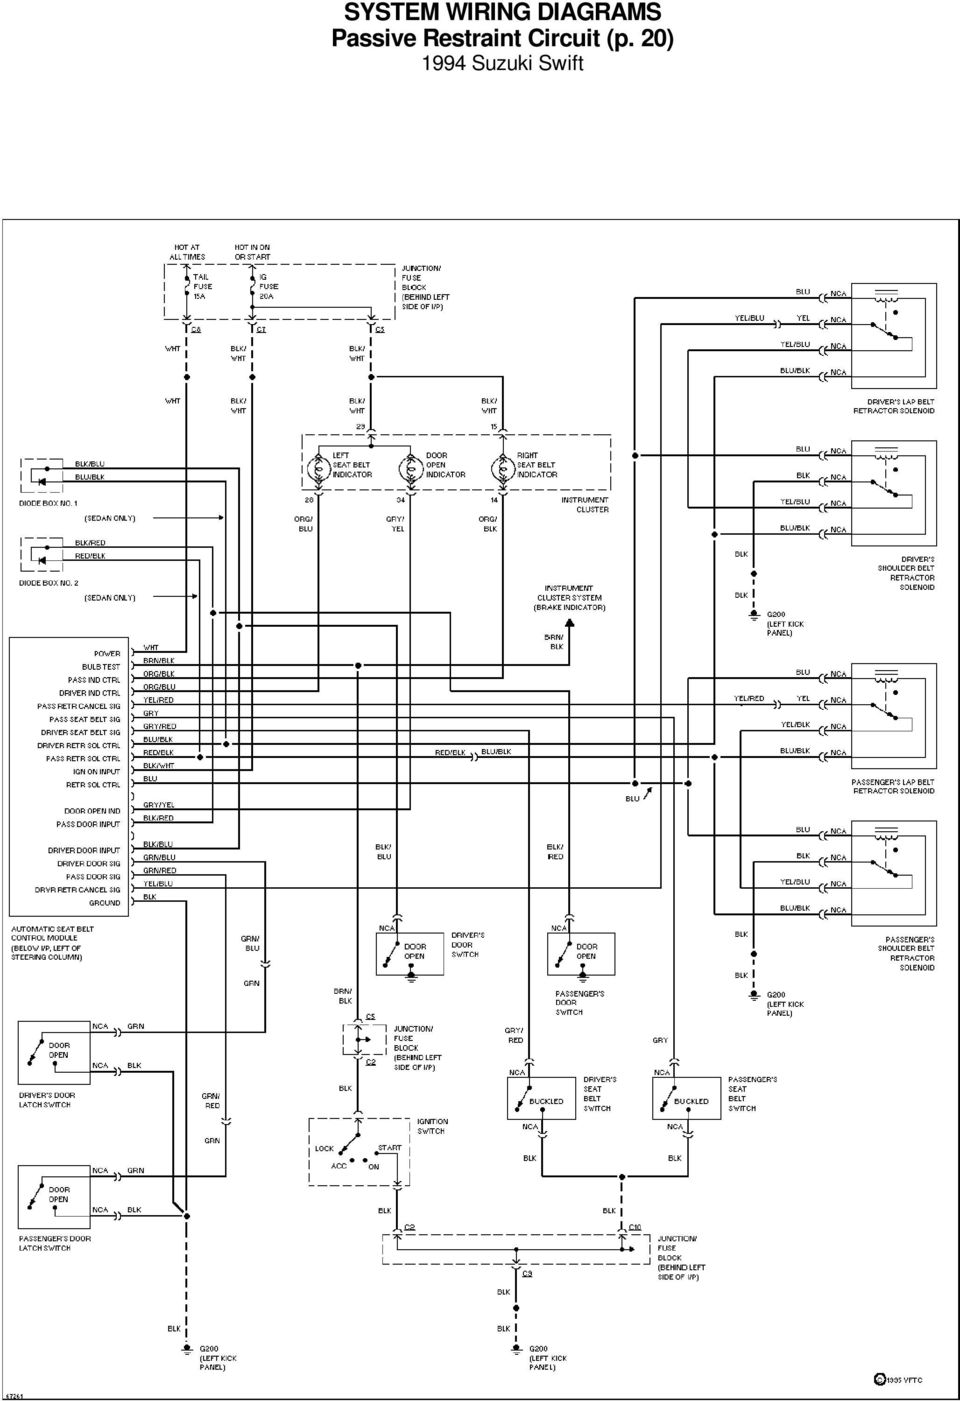 system wiring diagrams a  c circuit 1994 suzuki swift for x